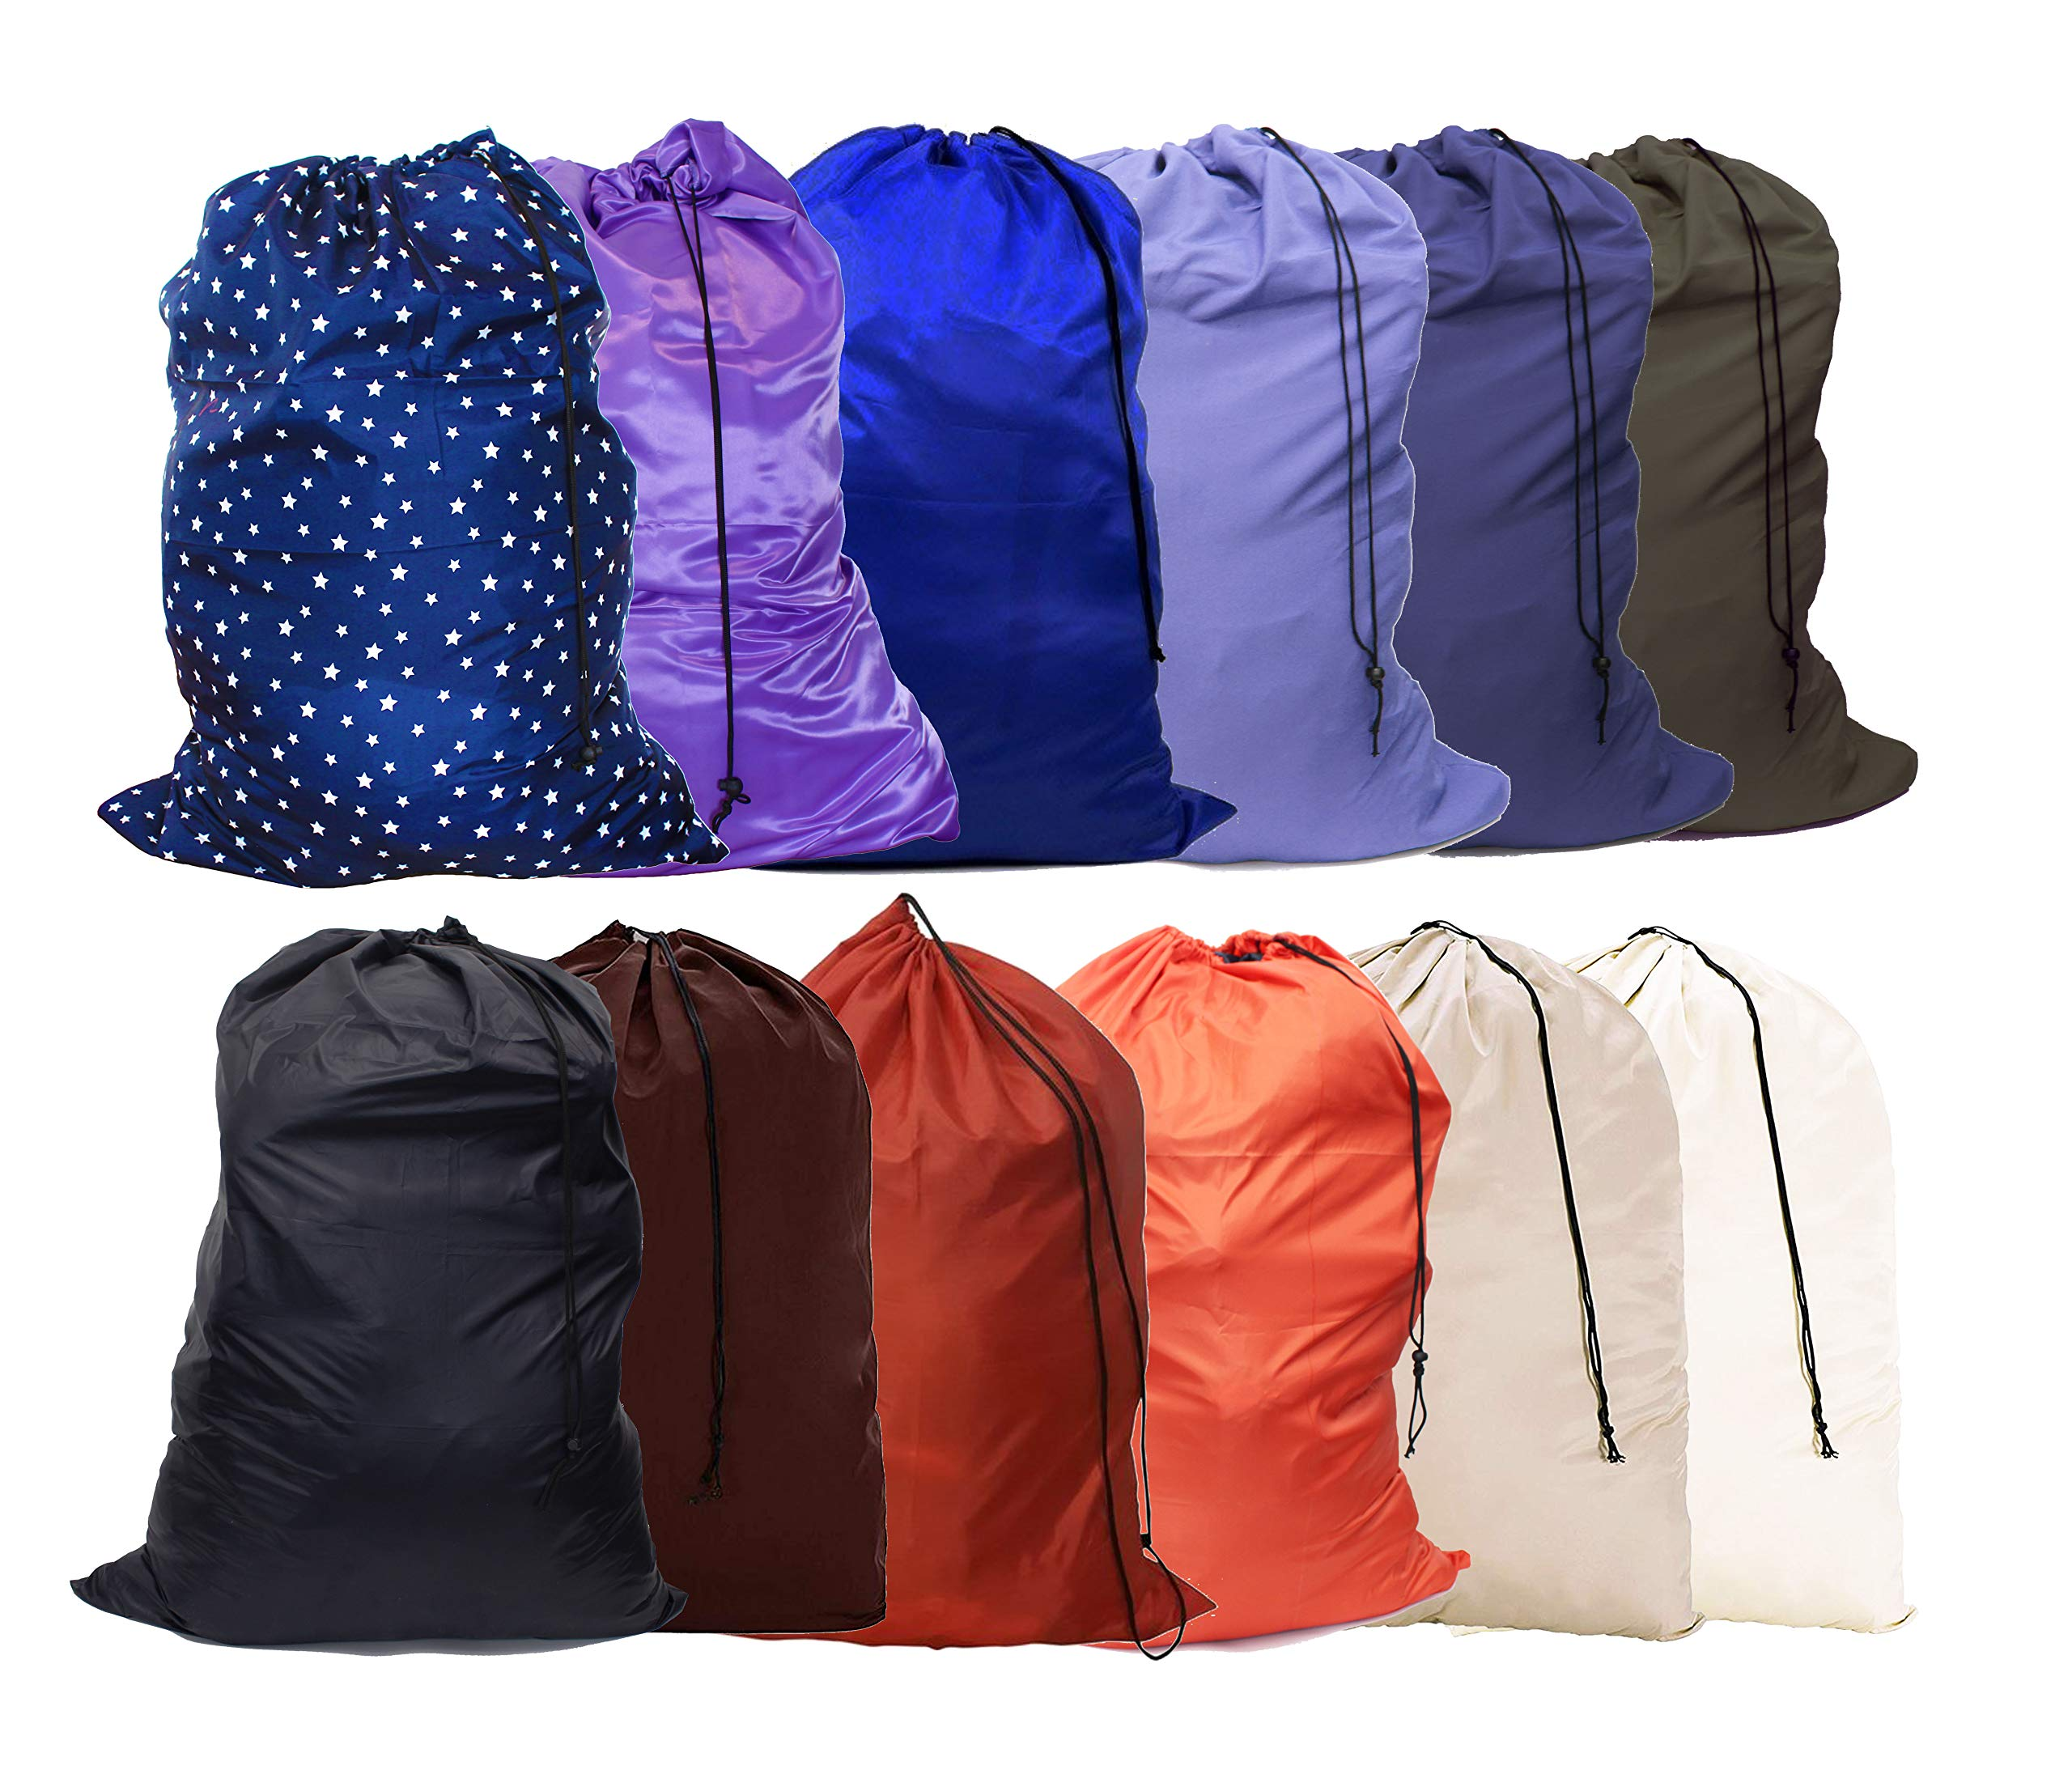 YETHAN Large Laundry Bag 12 Pack, Travel Laundry Bags with Drawstring Closure, 28''x38'', for College, Dorm and Apartment dwellers.